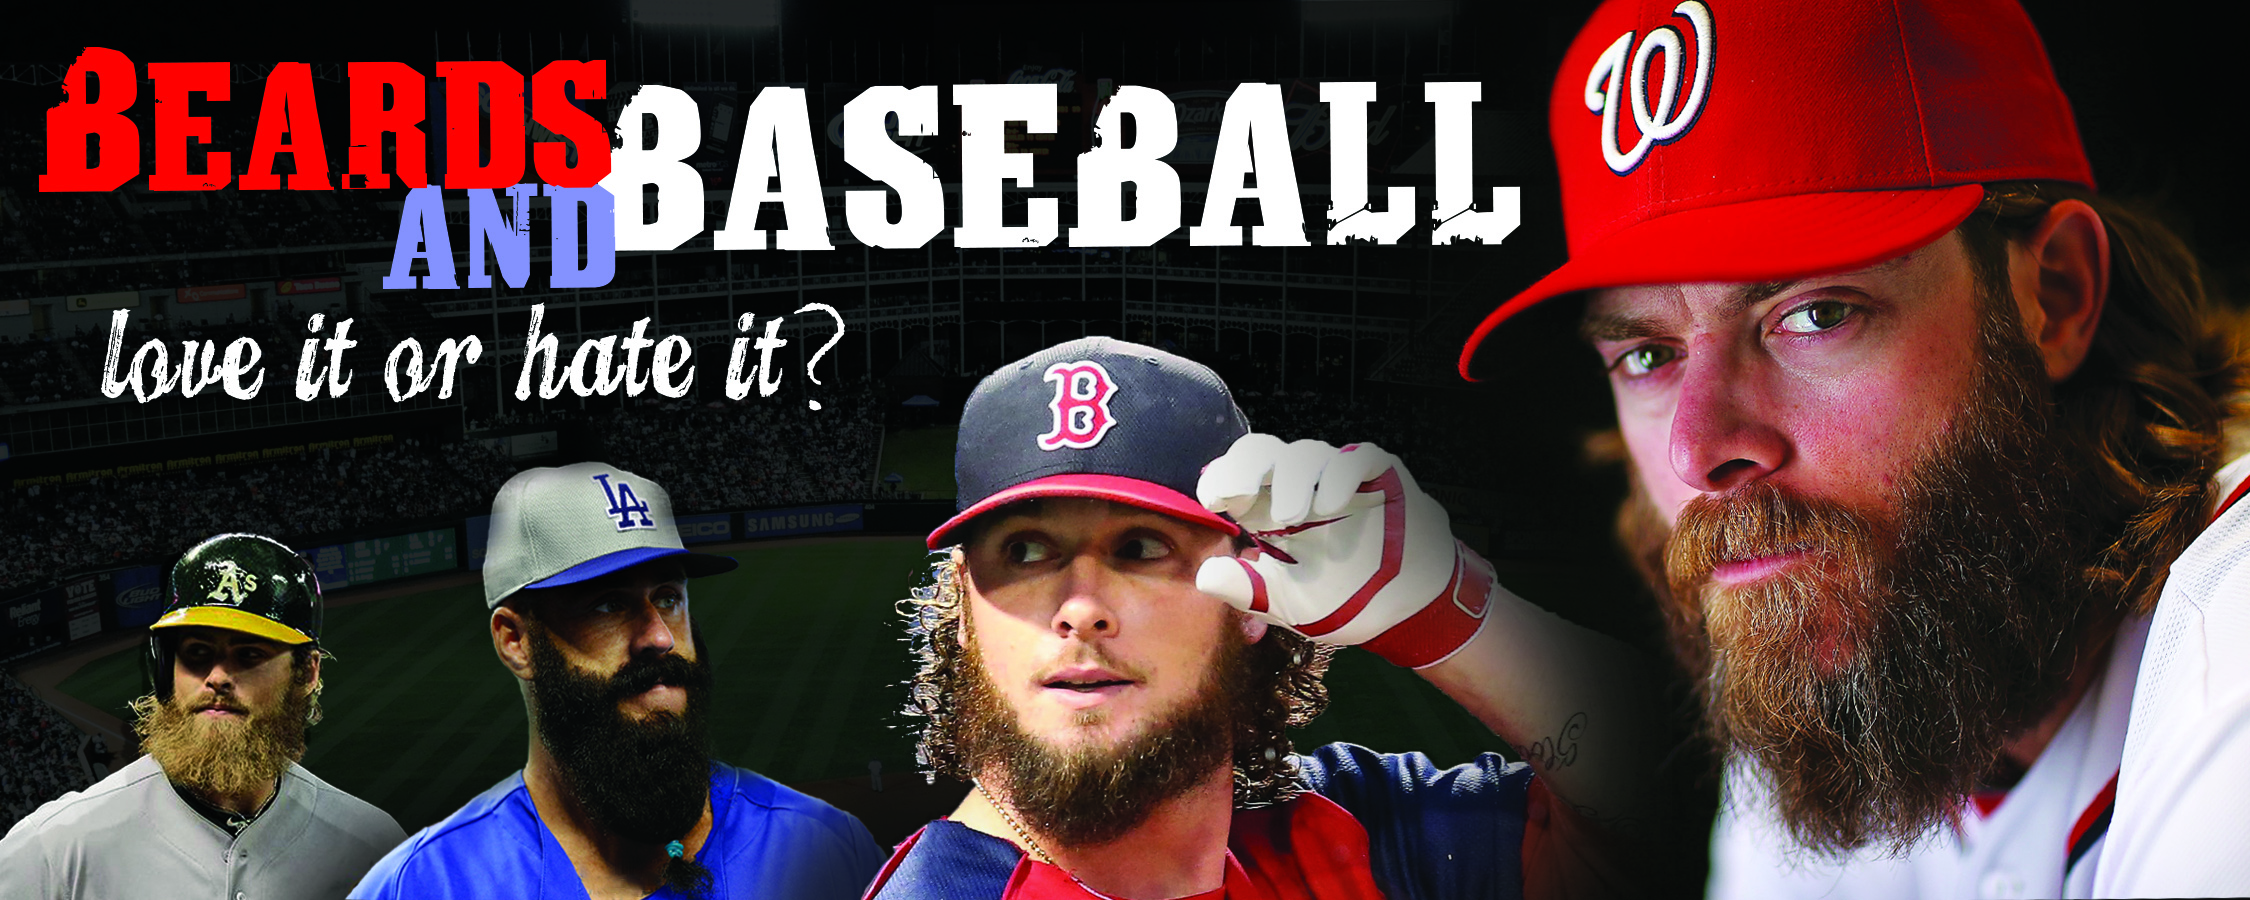 Baseball-Beards